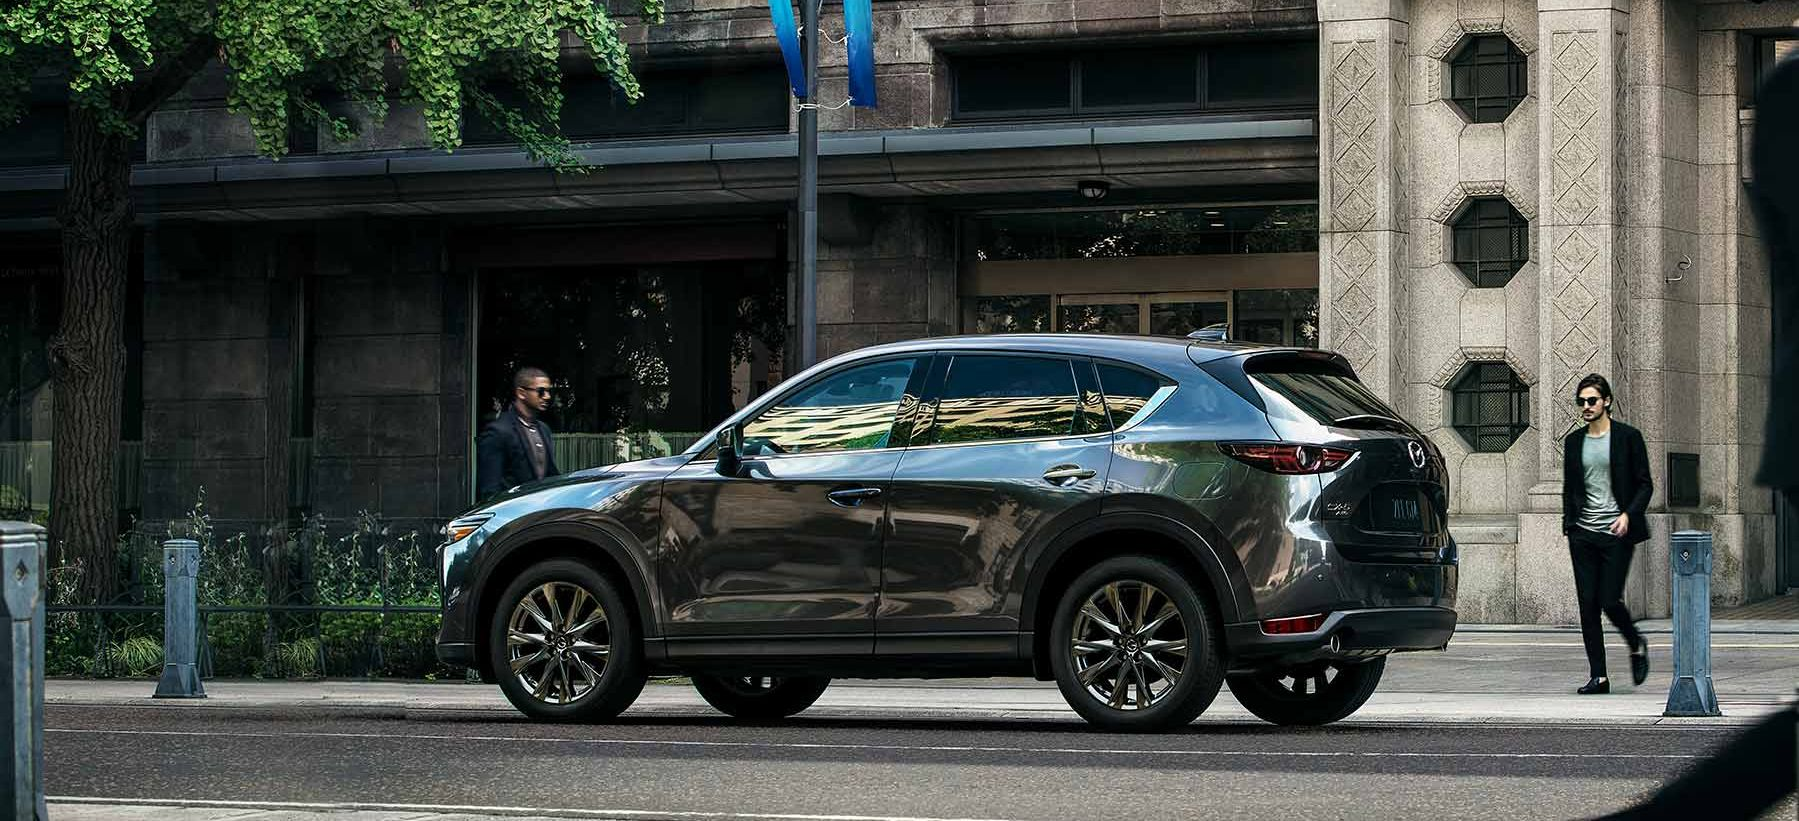 2019 Mazda CX-5 for Sale near Lodi, CA